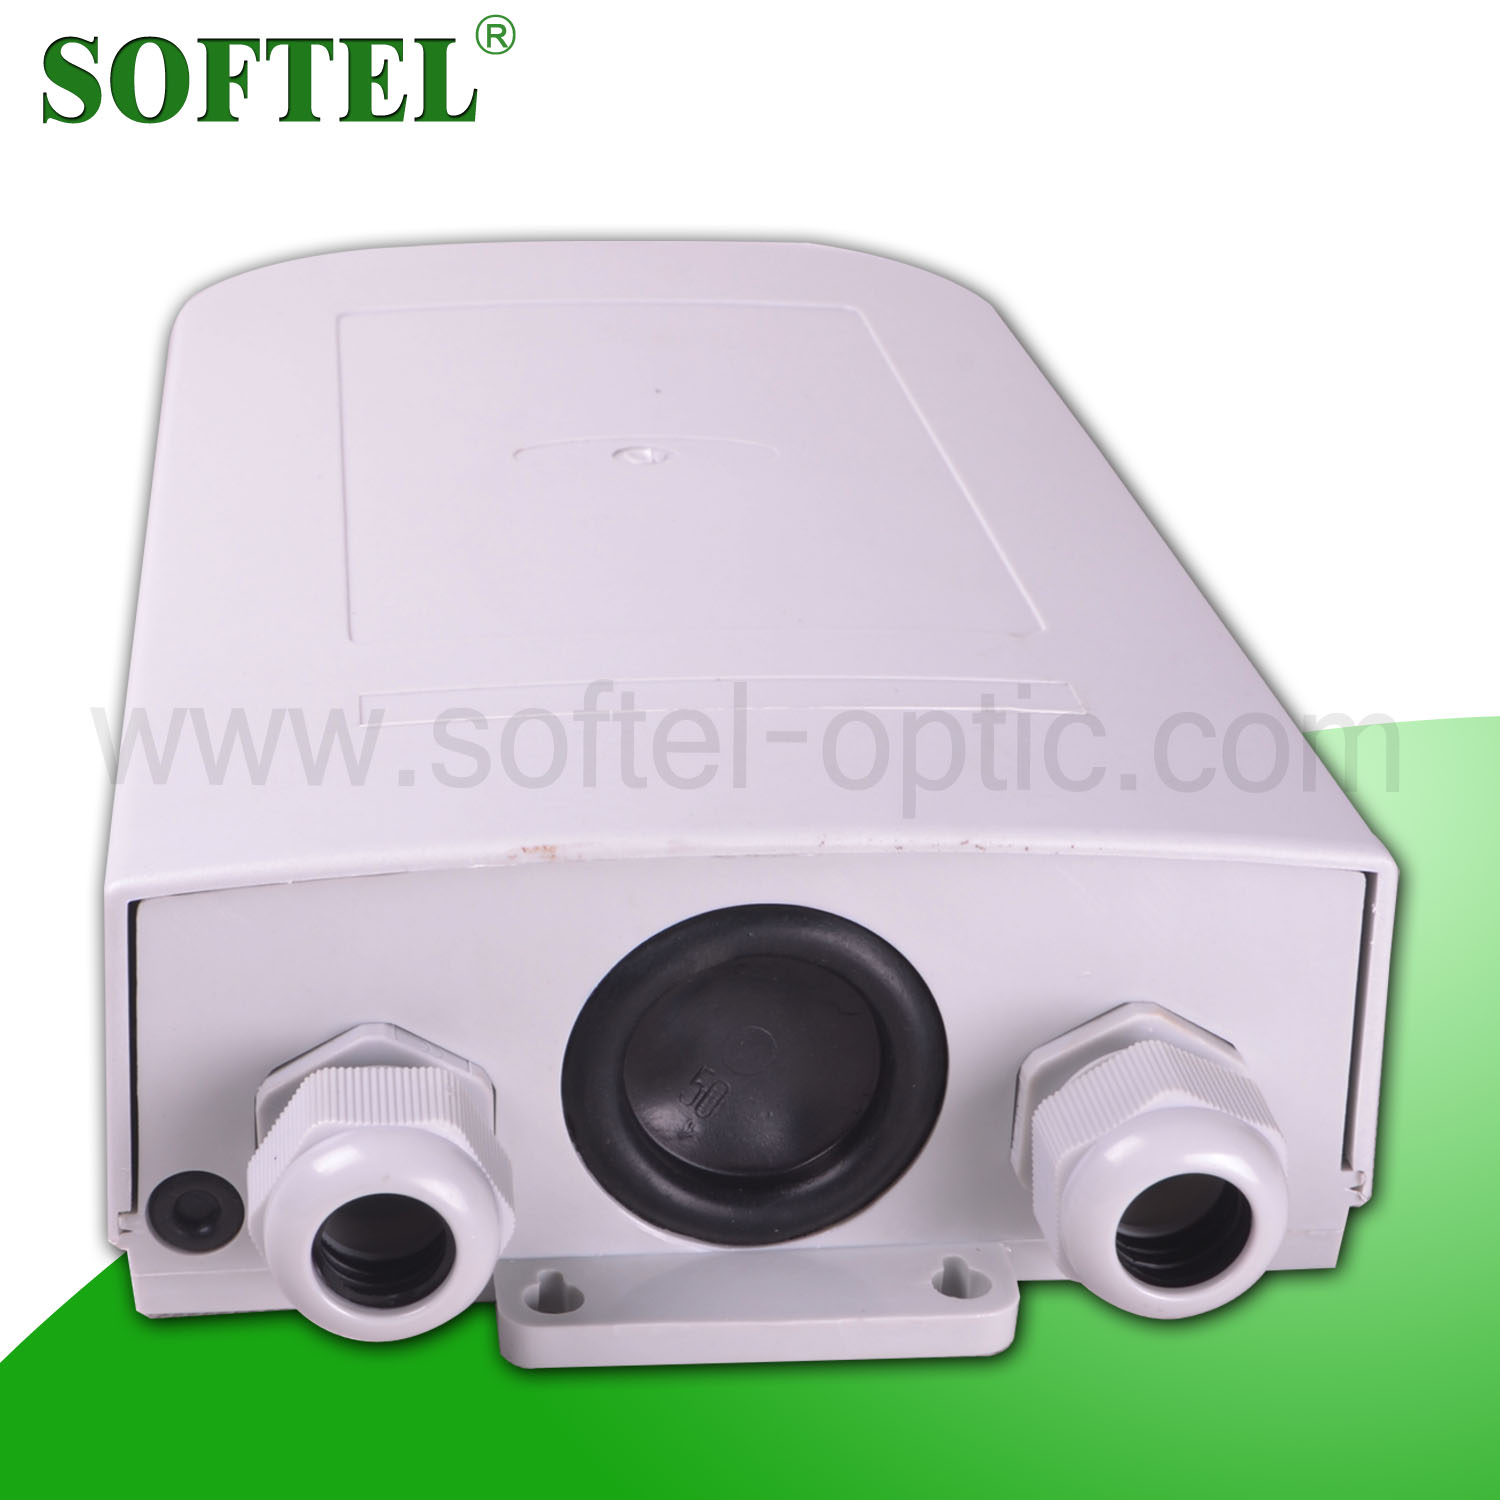 FTTx Wall-mounted Termination Box | 2 Port Mini FTTH Terminal Box for FTTH | FTTH Optic Wall Termination Box